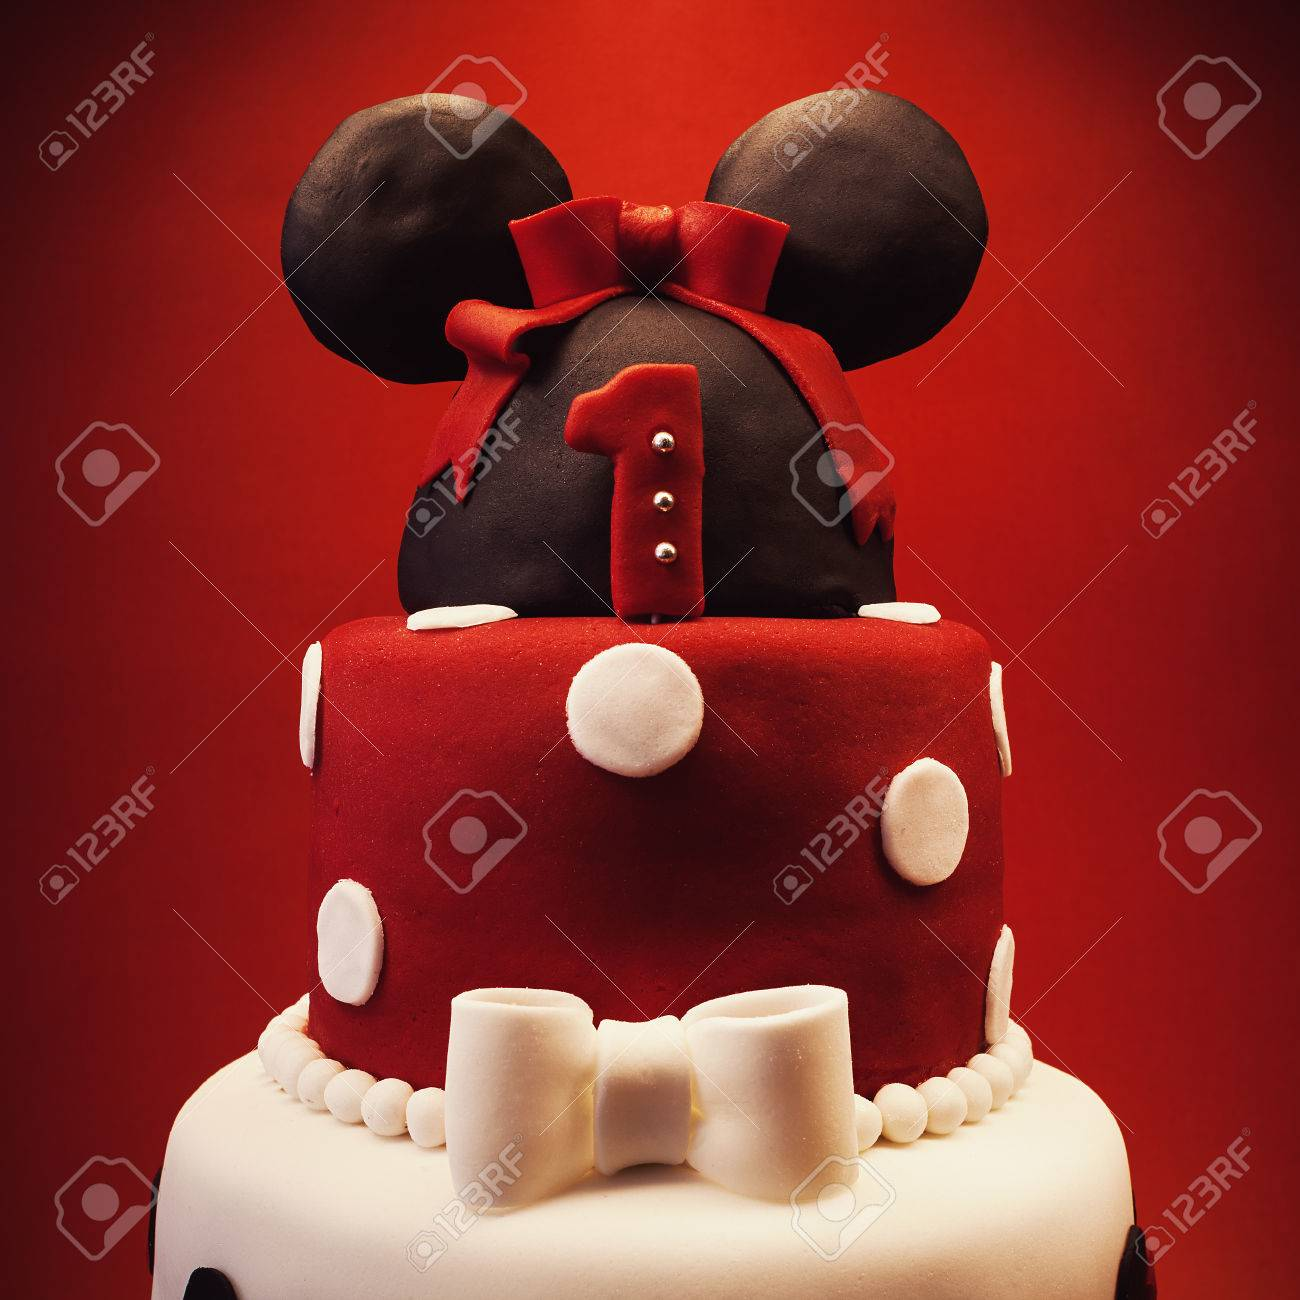 Astonishing Birthday Cake For Baby Girl On Red Background Details And Design Funny Birthday Cards Online Inifodamsfinfo